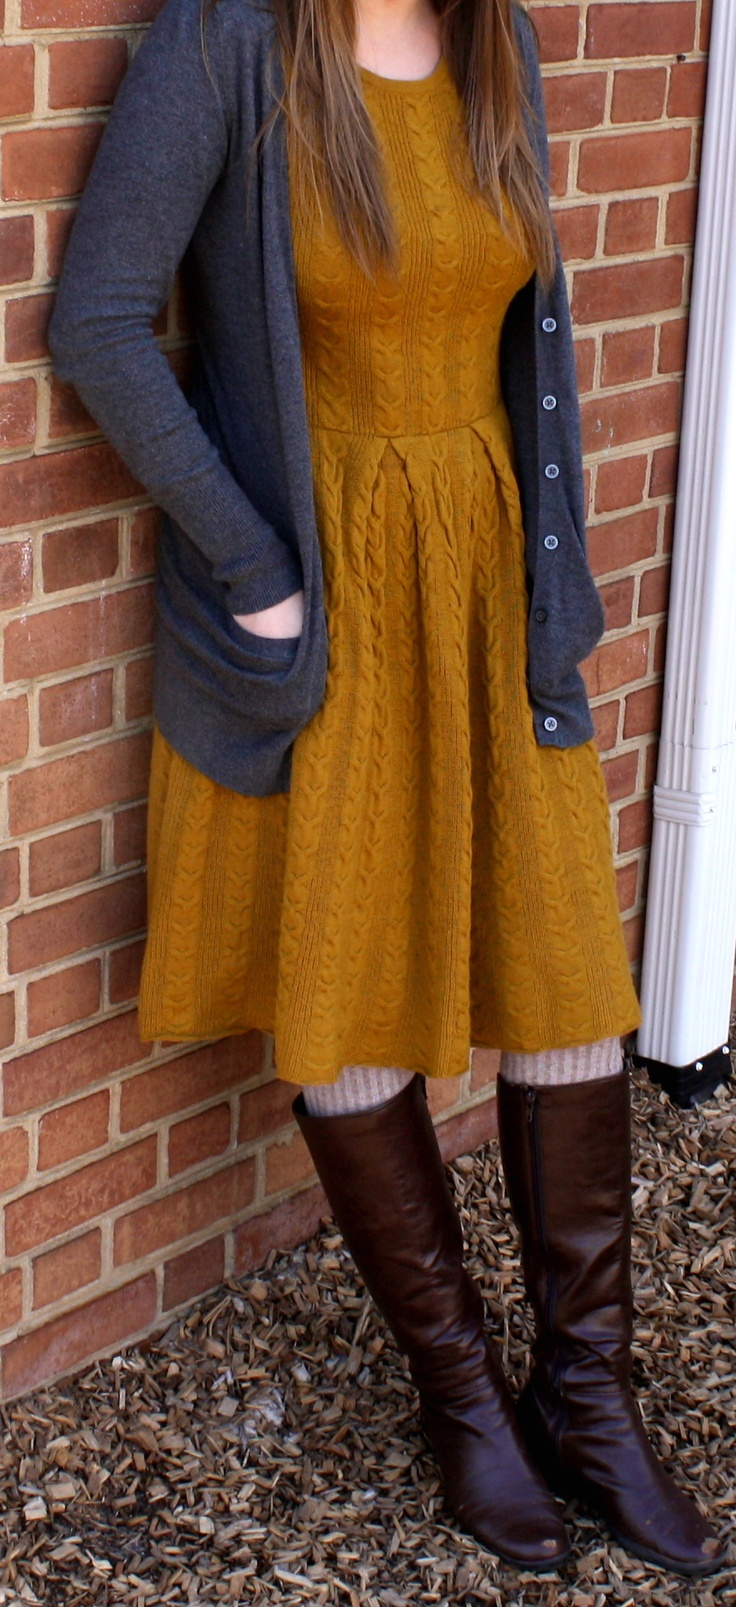 anthropologie dress :: ready for fall